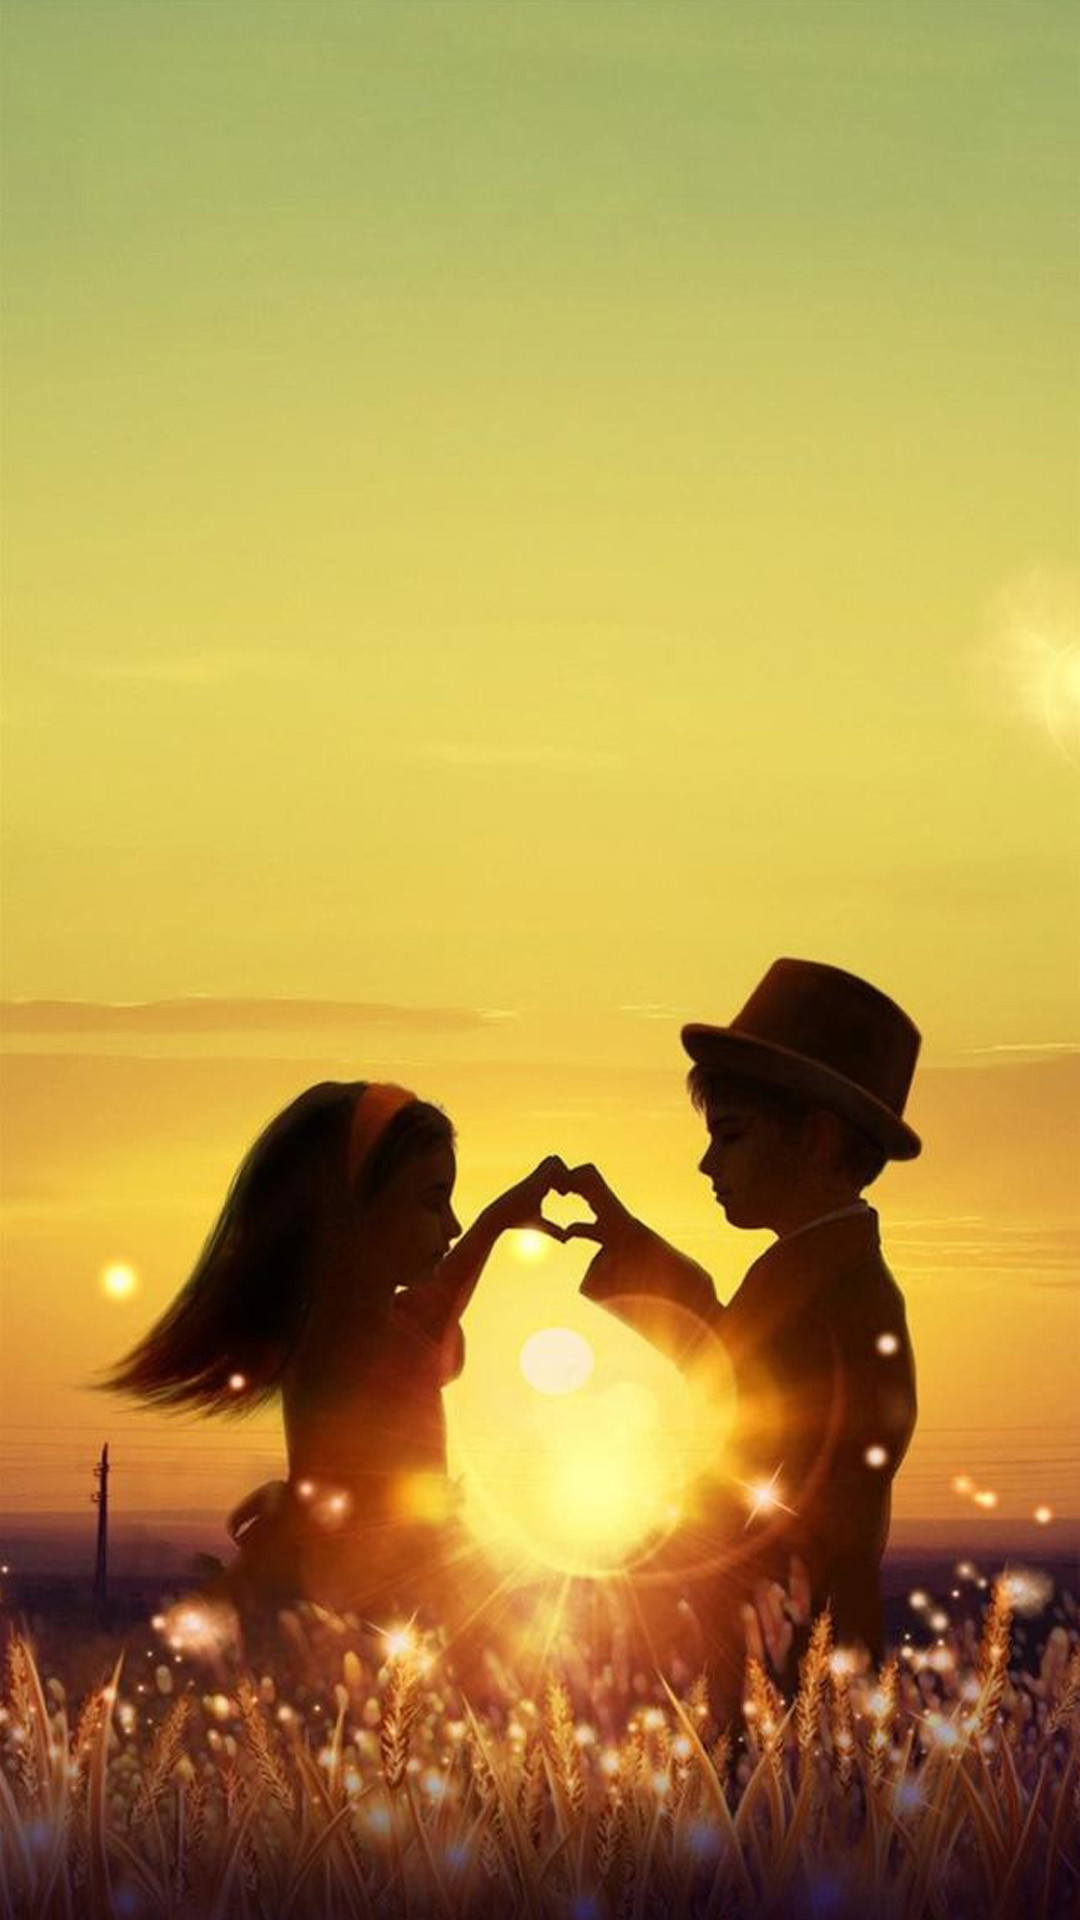 1080x1920 Sunset Love Cute Kids Couple Sunlight Flowers Field iPhone 8 wallpaper